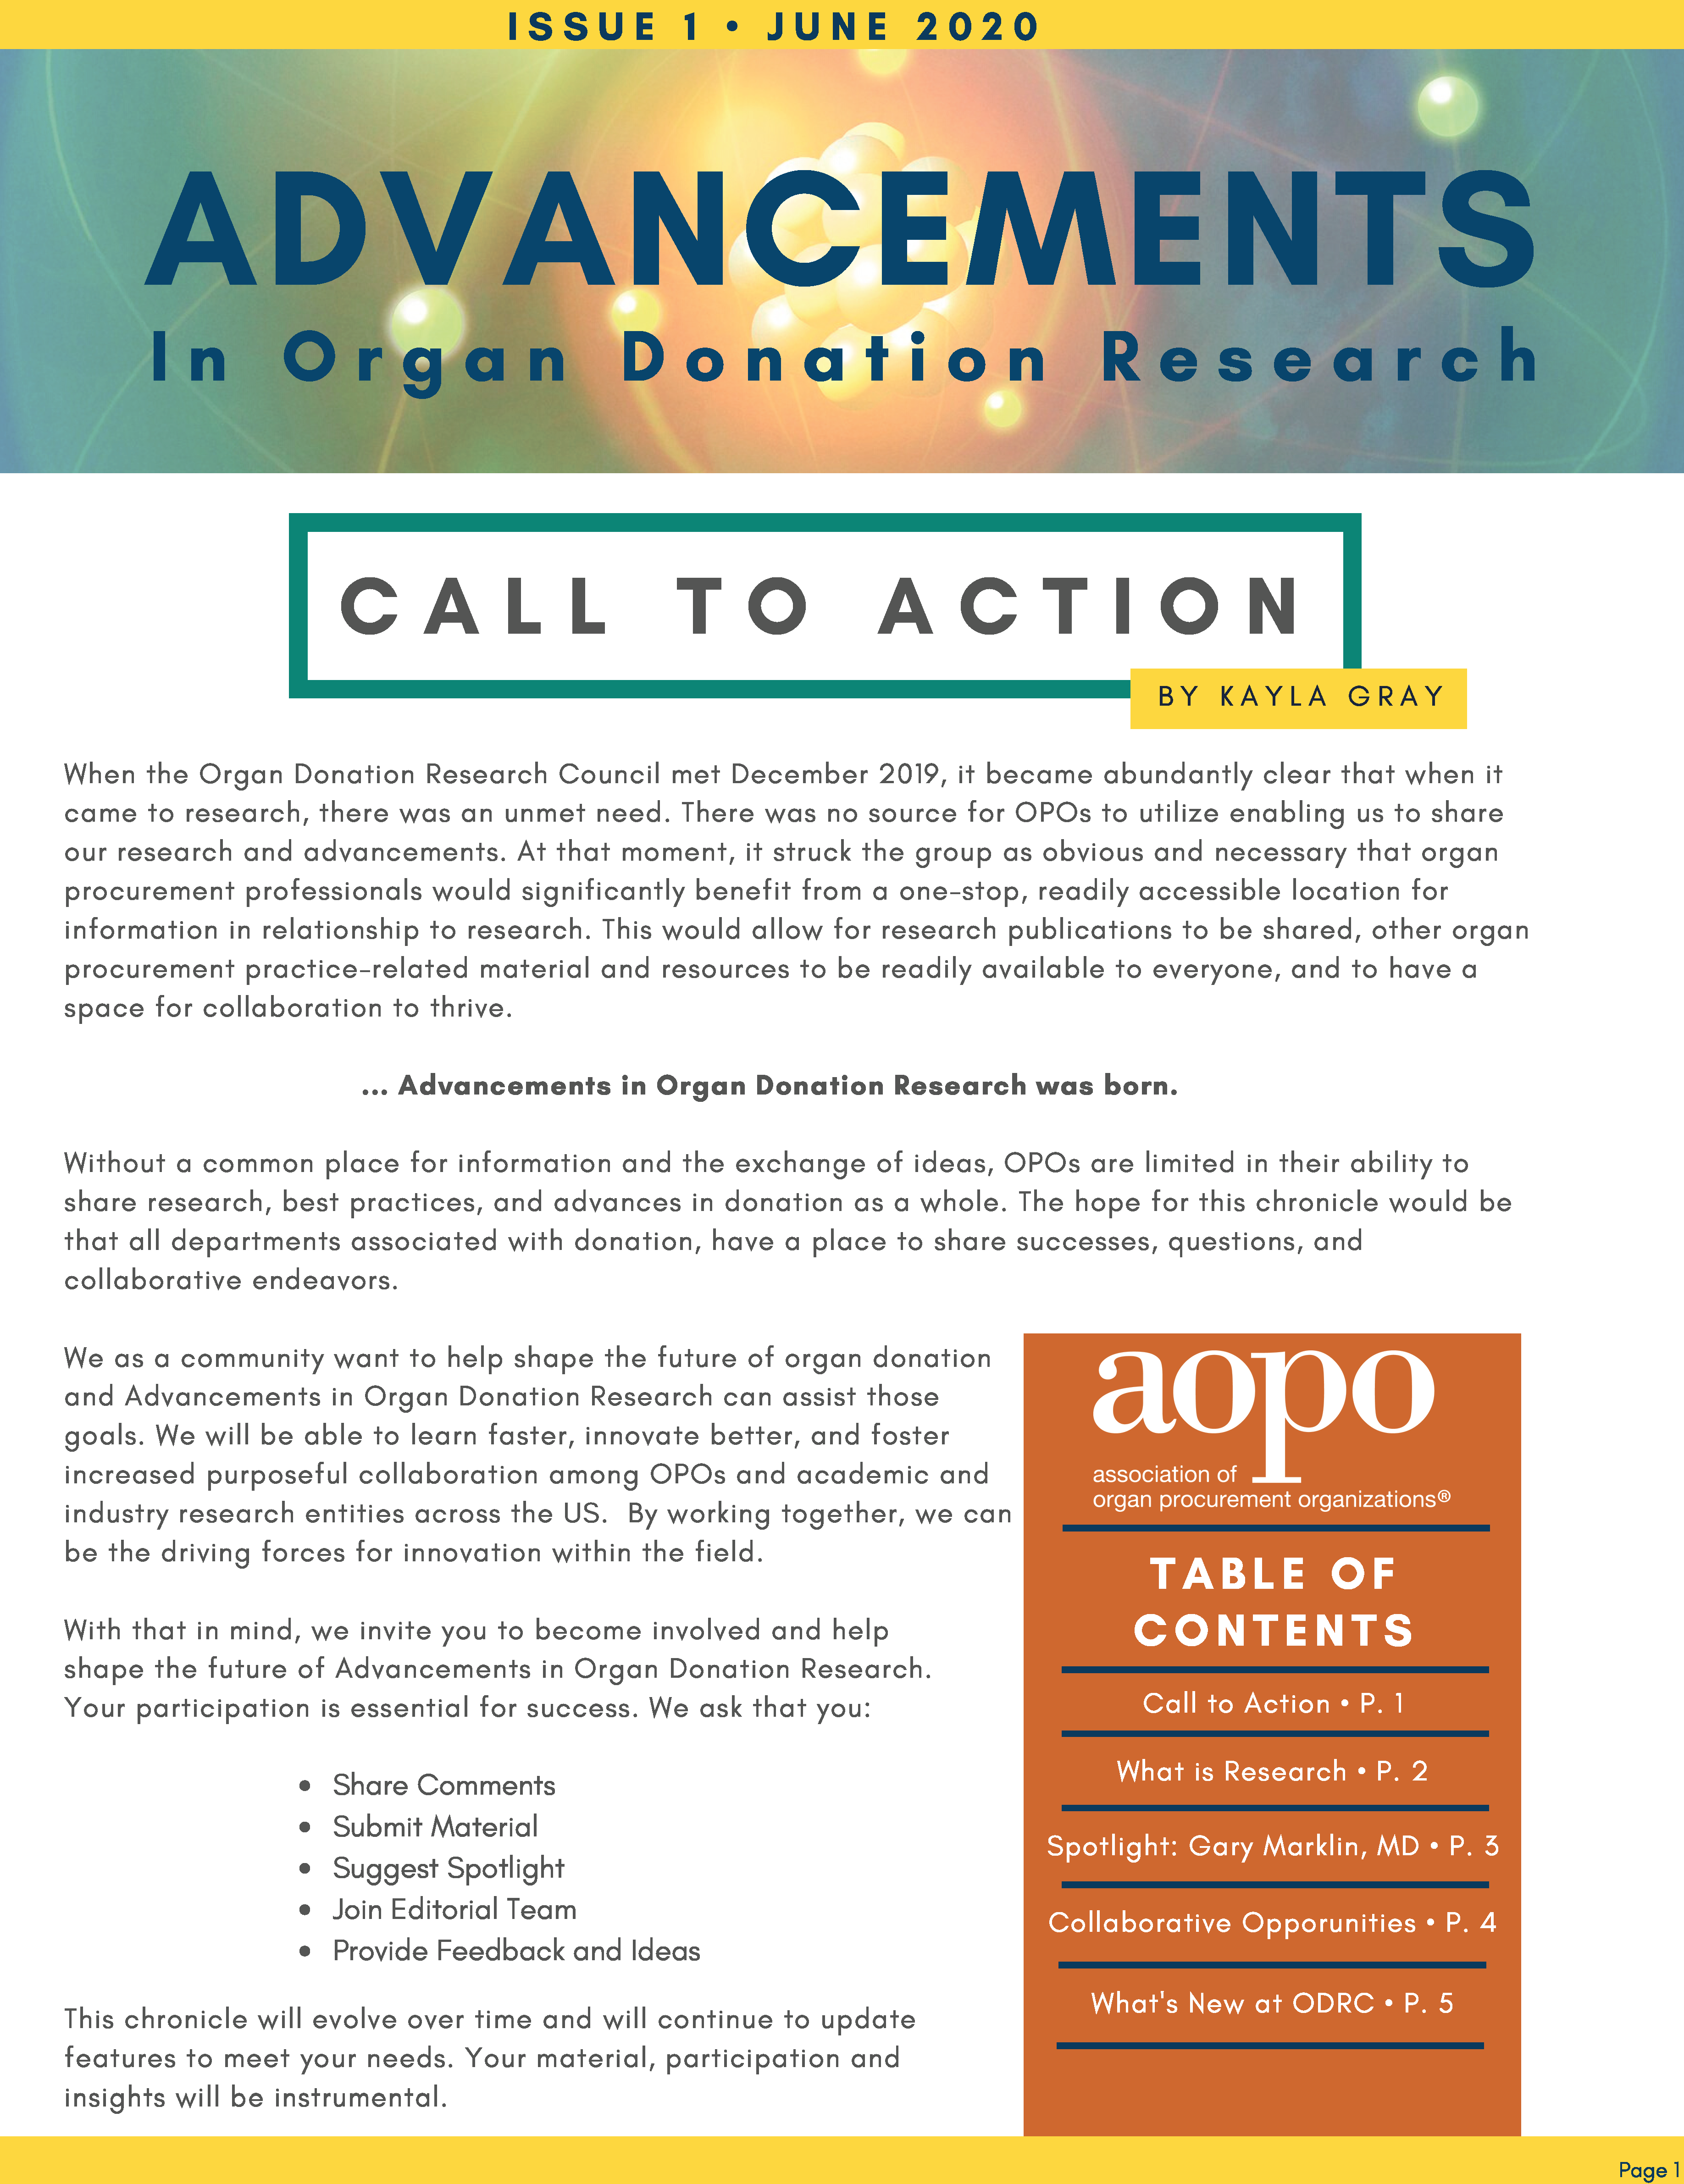 Advancements in Organ Donation Reasearch Jun 2020 Page 1